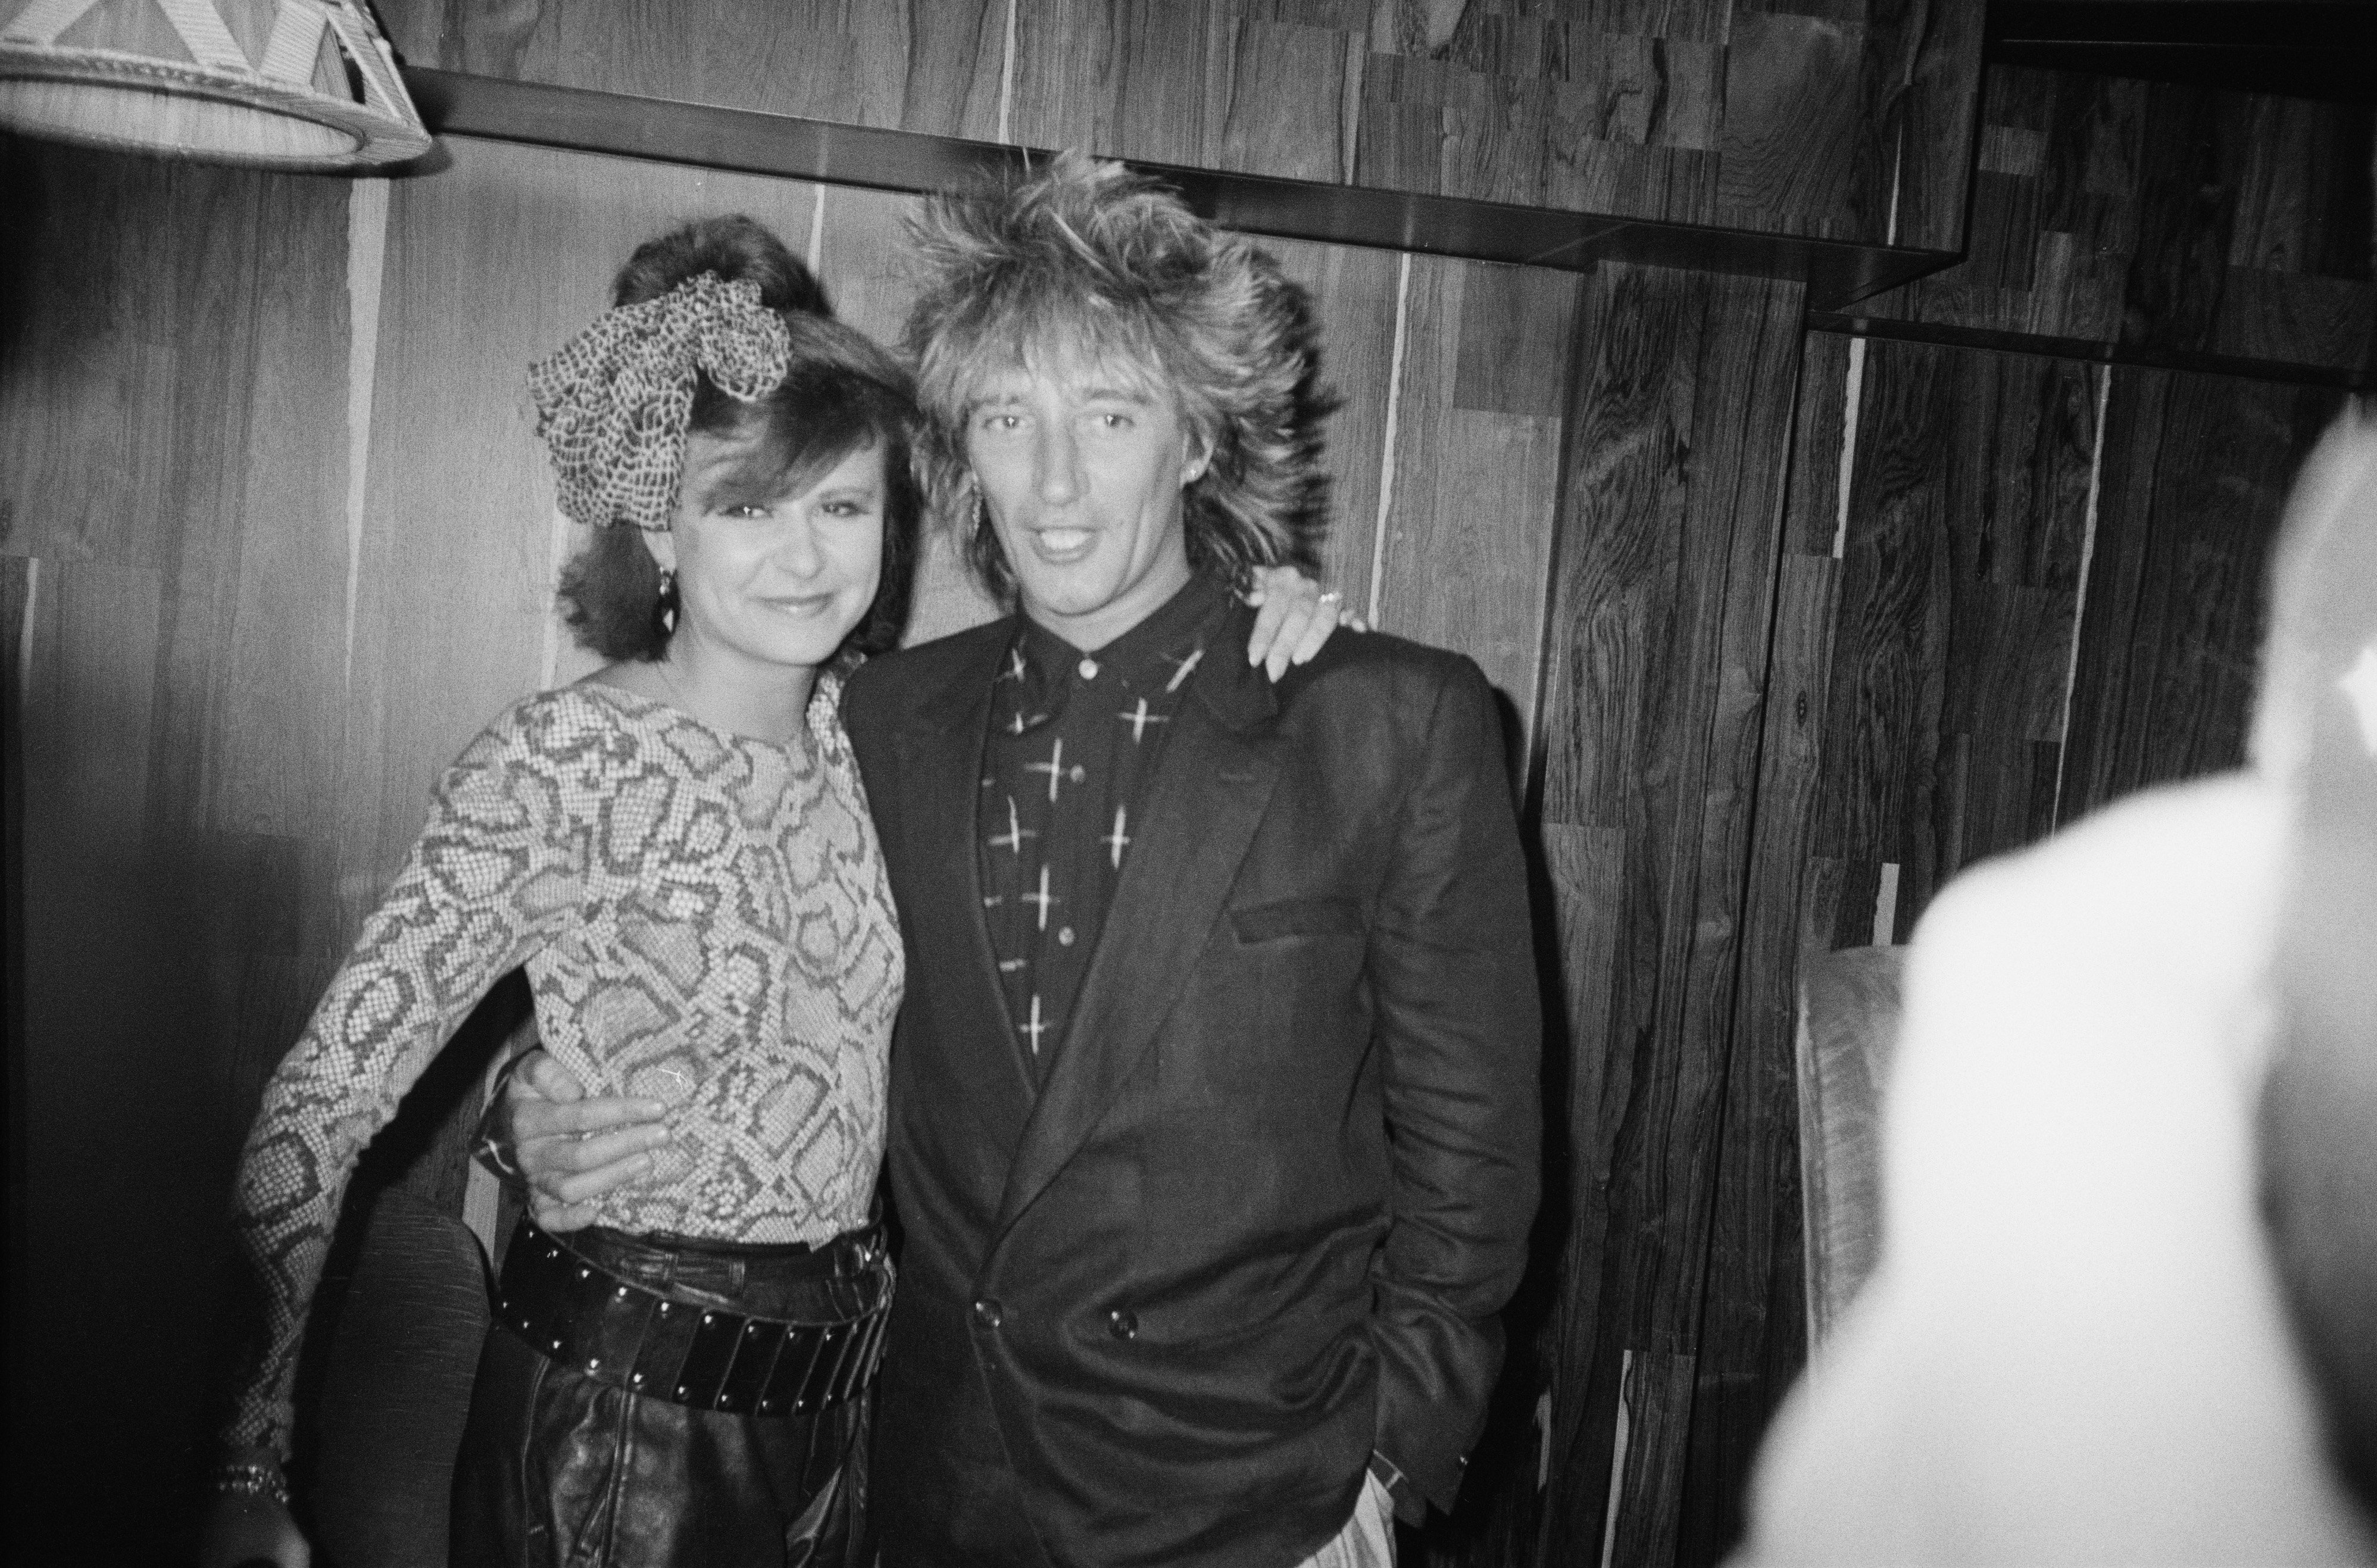 British singer, songwriter and musician Rod Stewart with singer, actress and comedienne Tracey Ullman, 15th May 1984. (Photo by P. Shirley/Express/Getty Images)